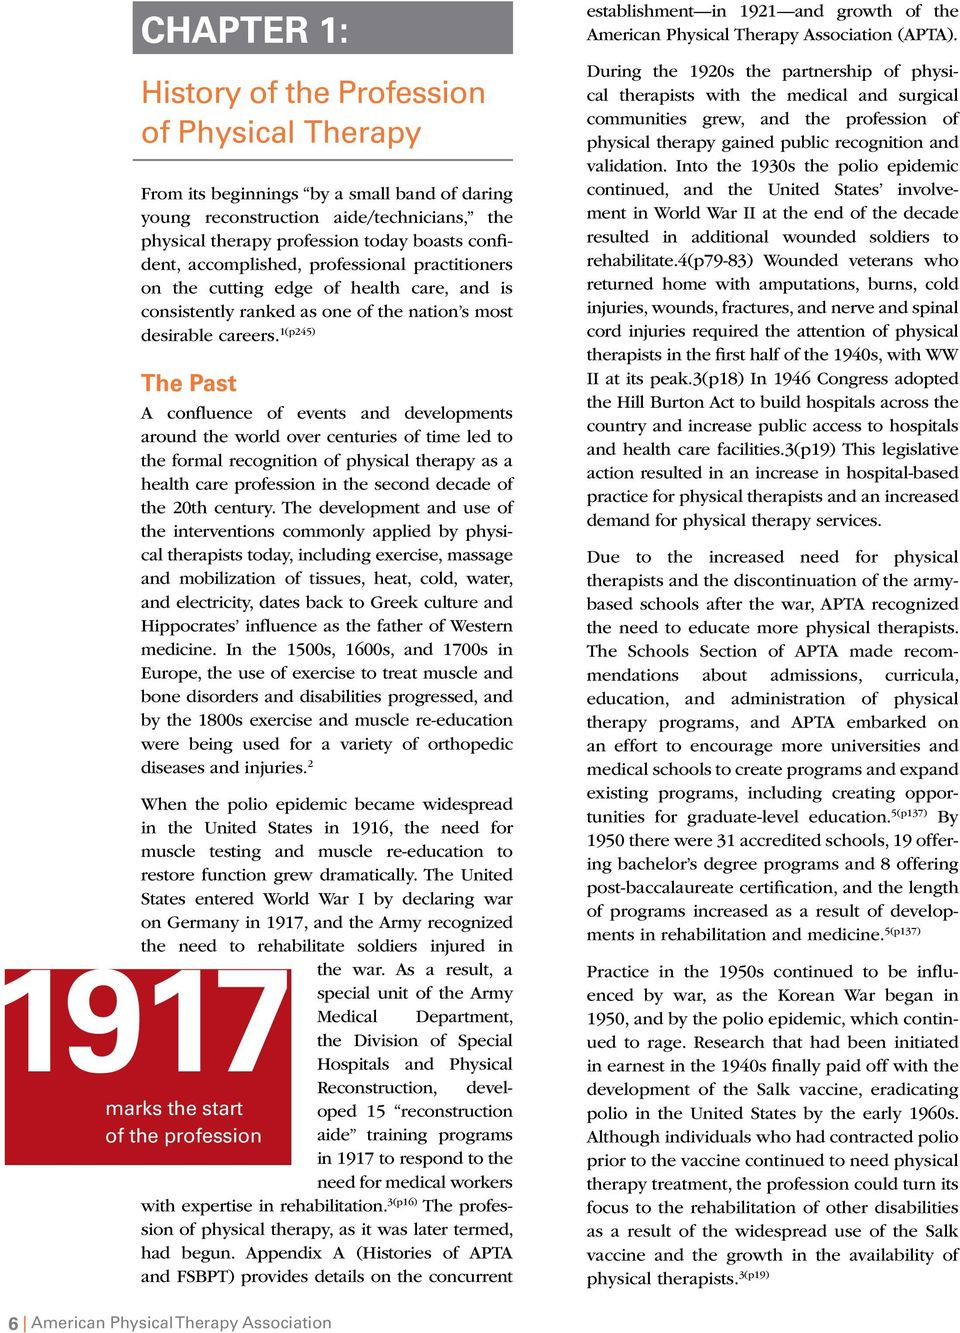 1(p245) The Past A confluence of events and developments around the world over centuries of time led to the formal recognition of physical therapy as a health care profession in the second decade of